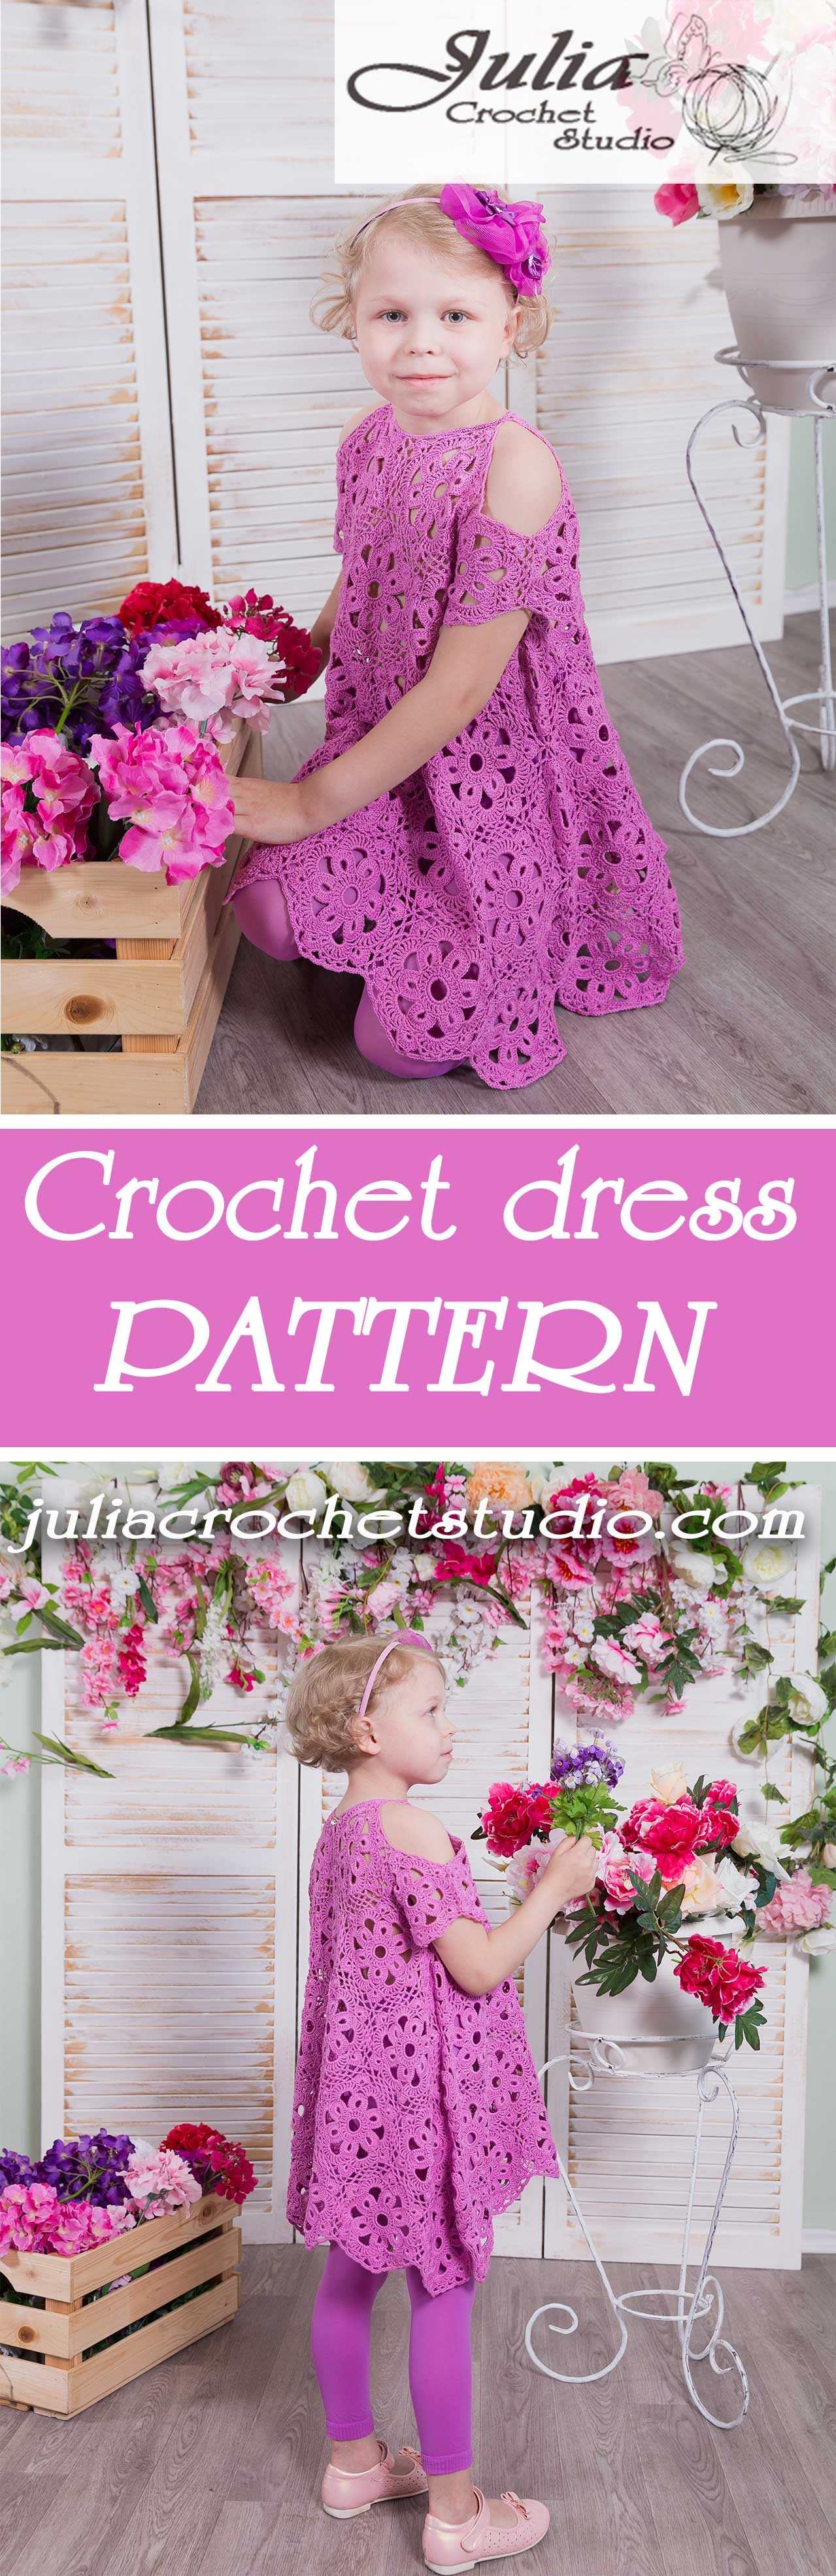 Summer dress for a little girl crochet pattern